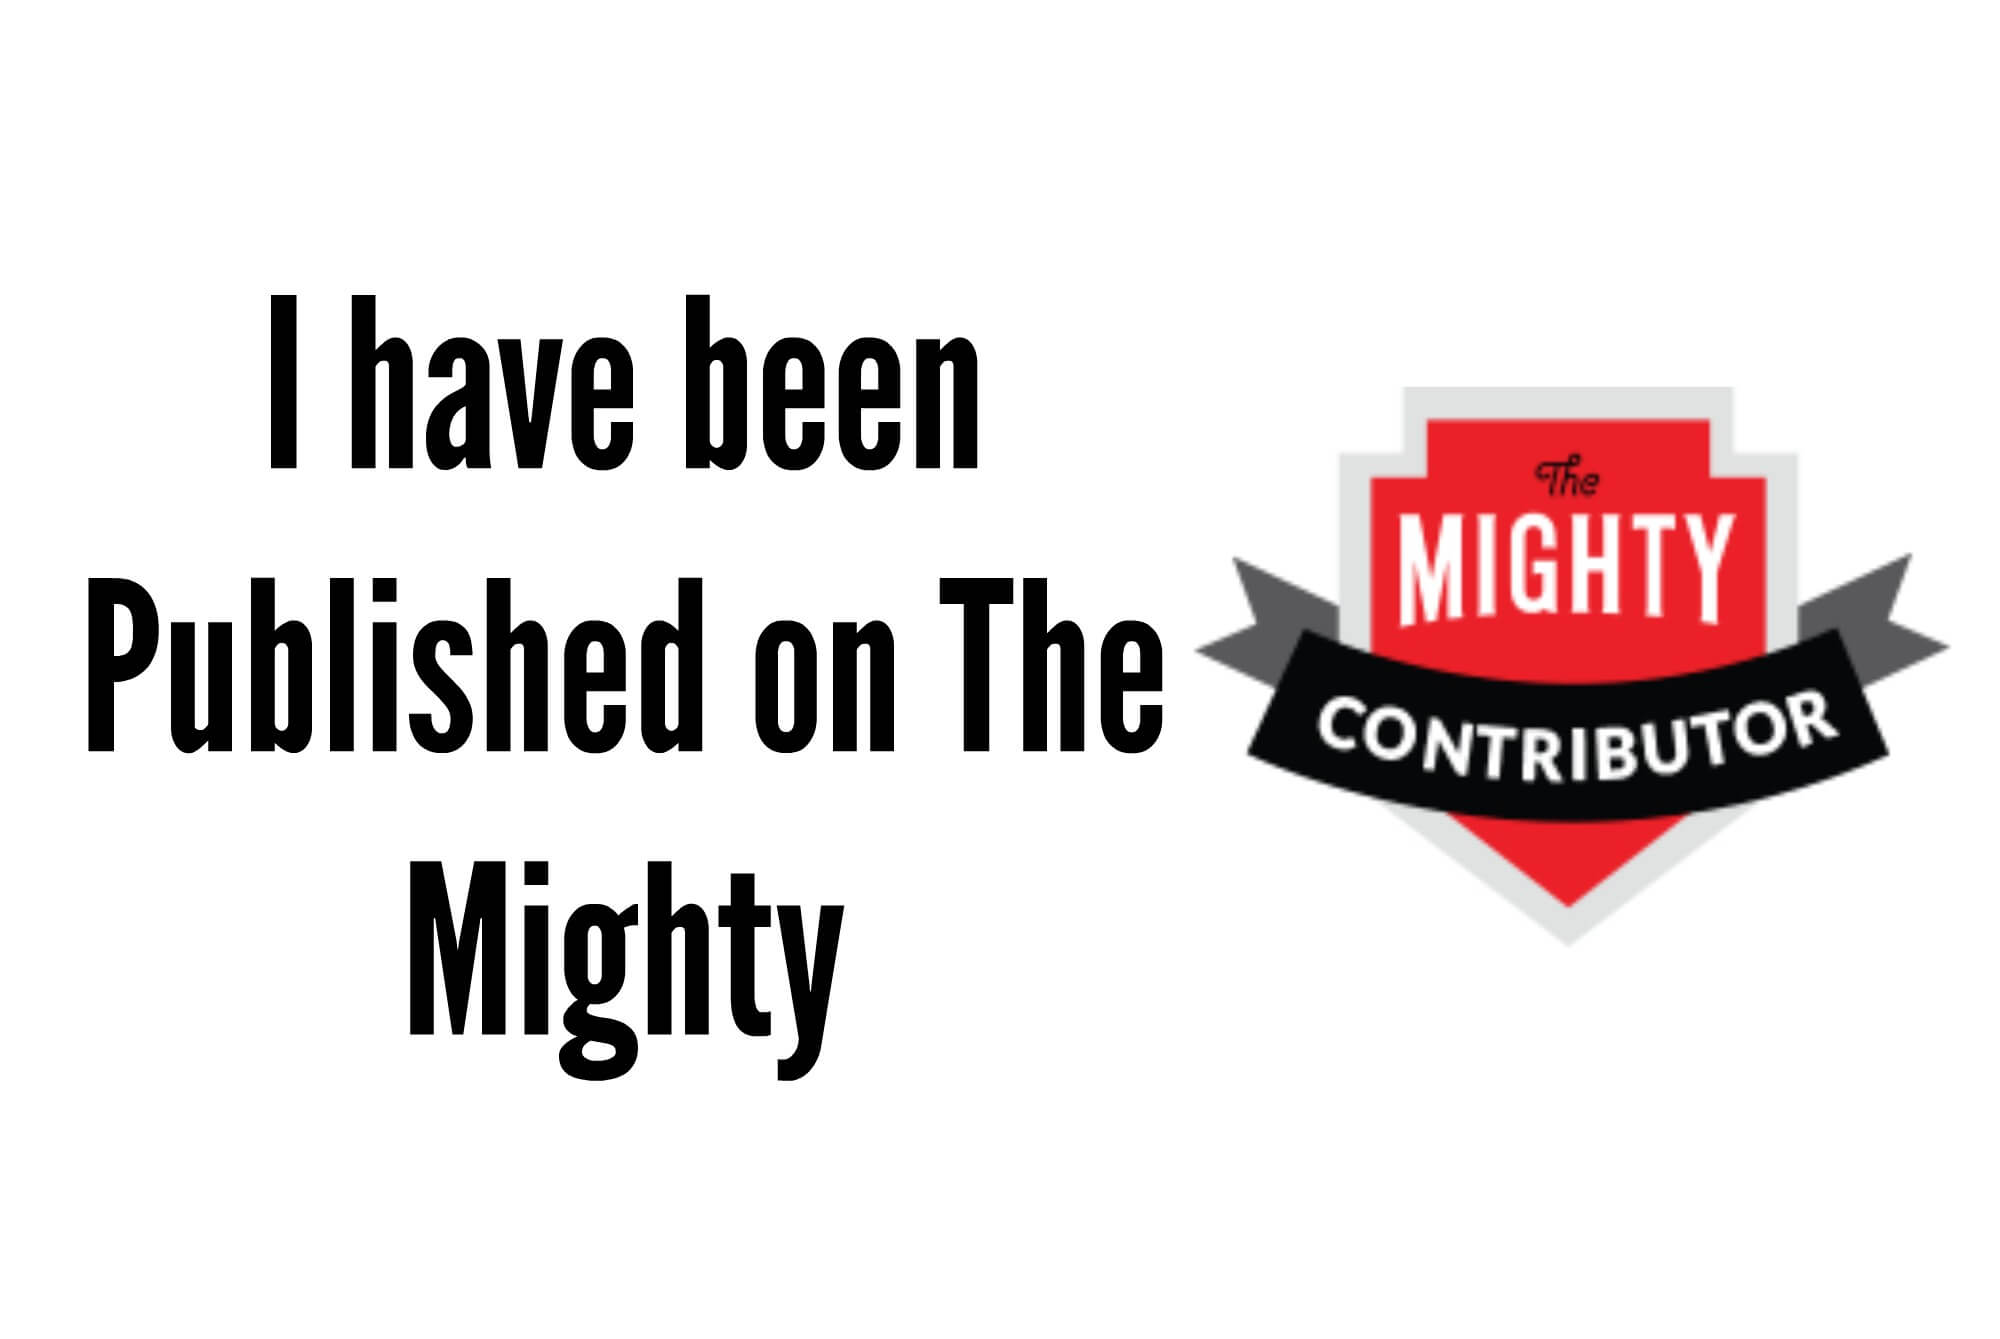 I have been Published on The Mighty